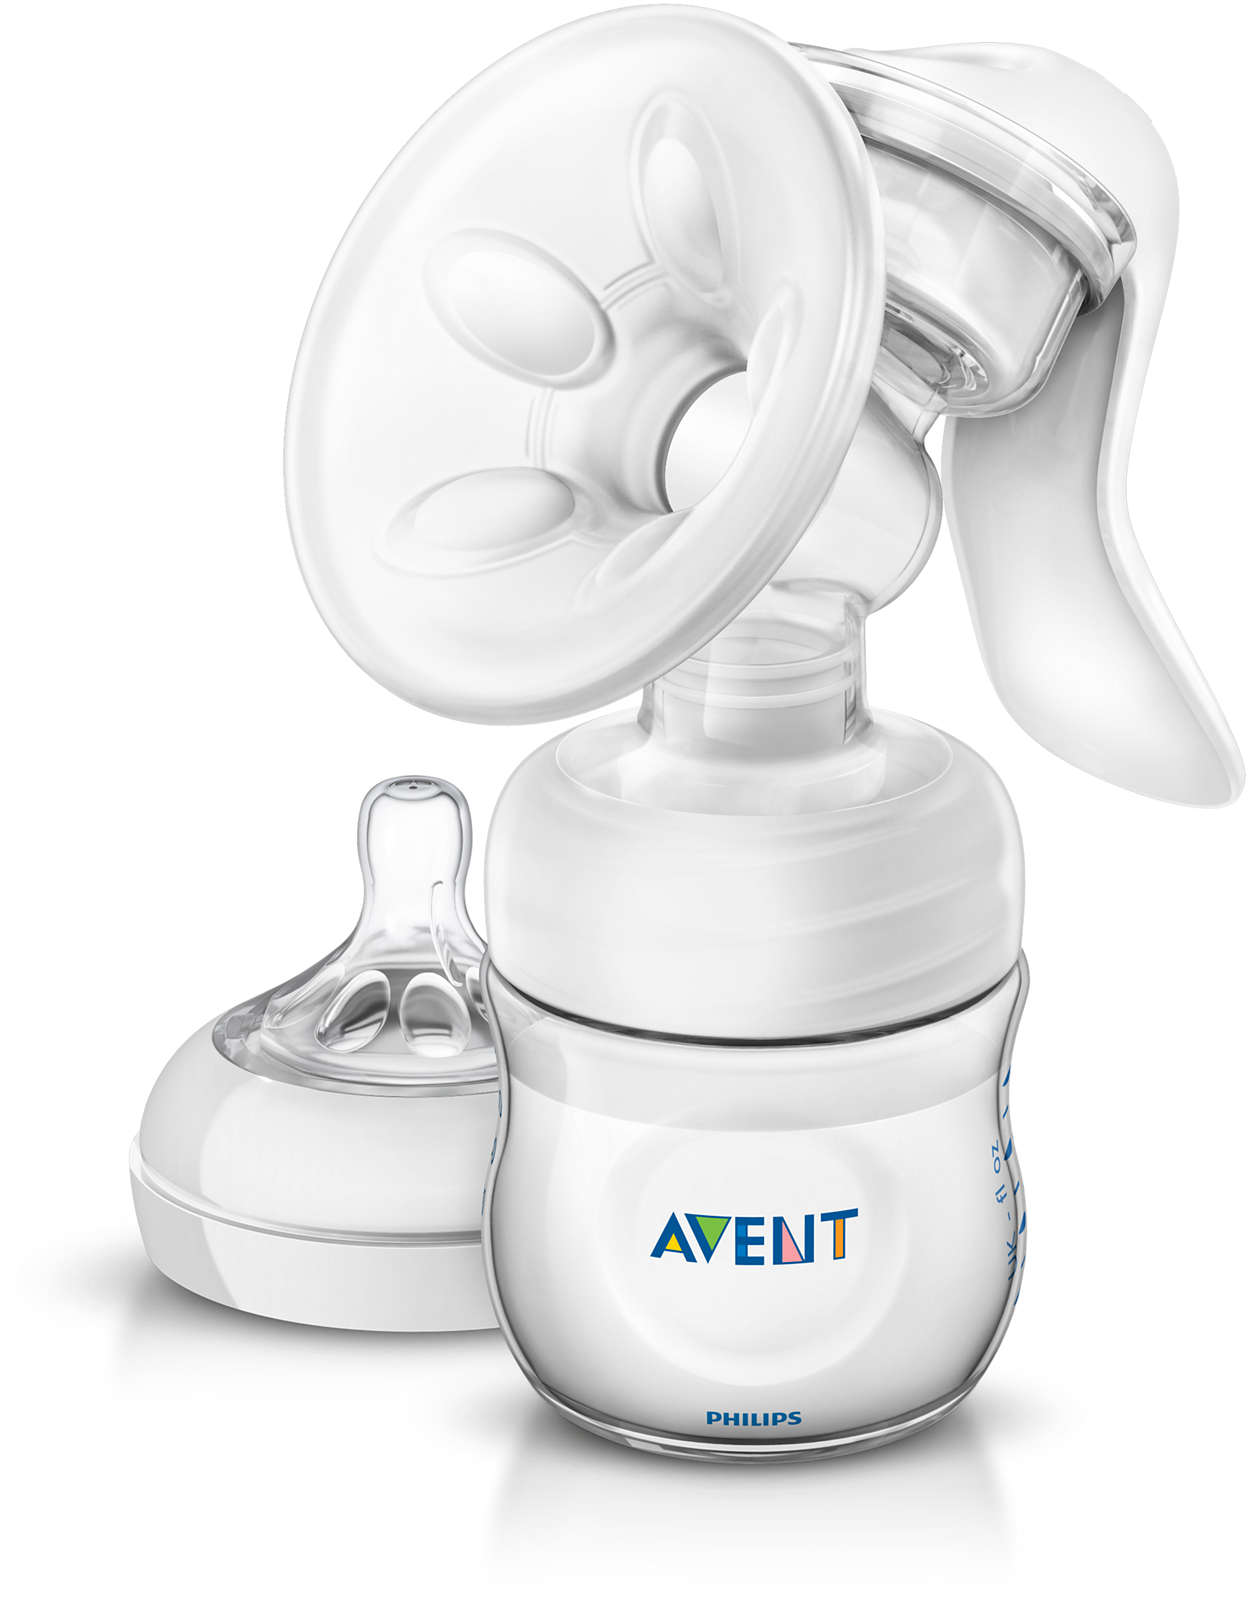 Something is. Avent breast pump via sorry, that